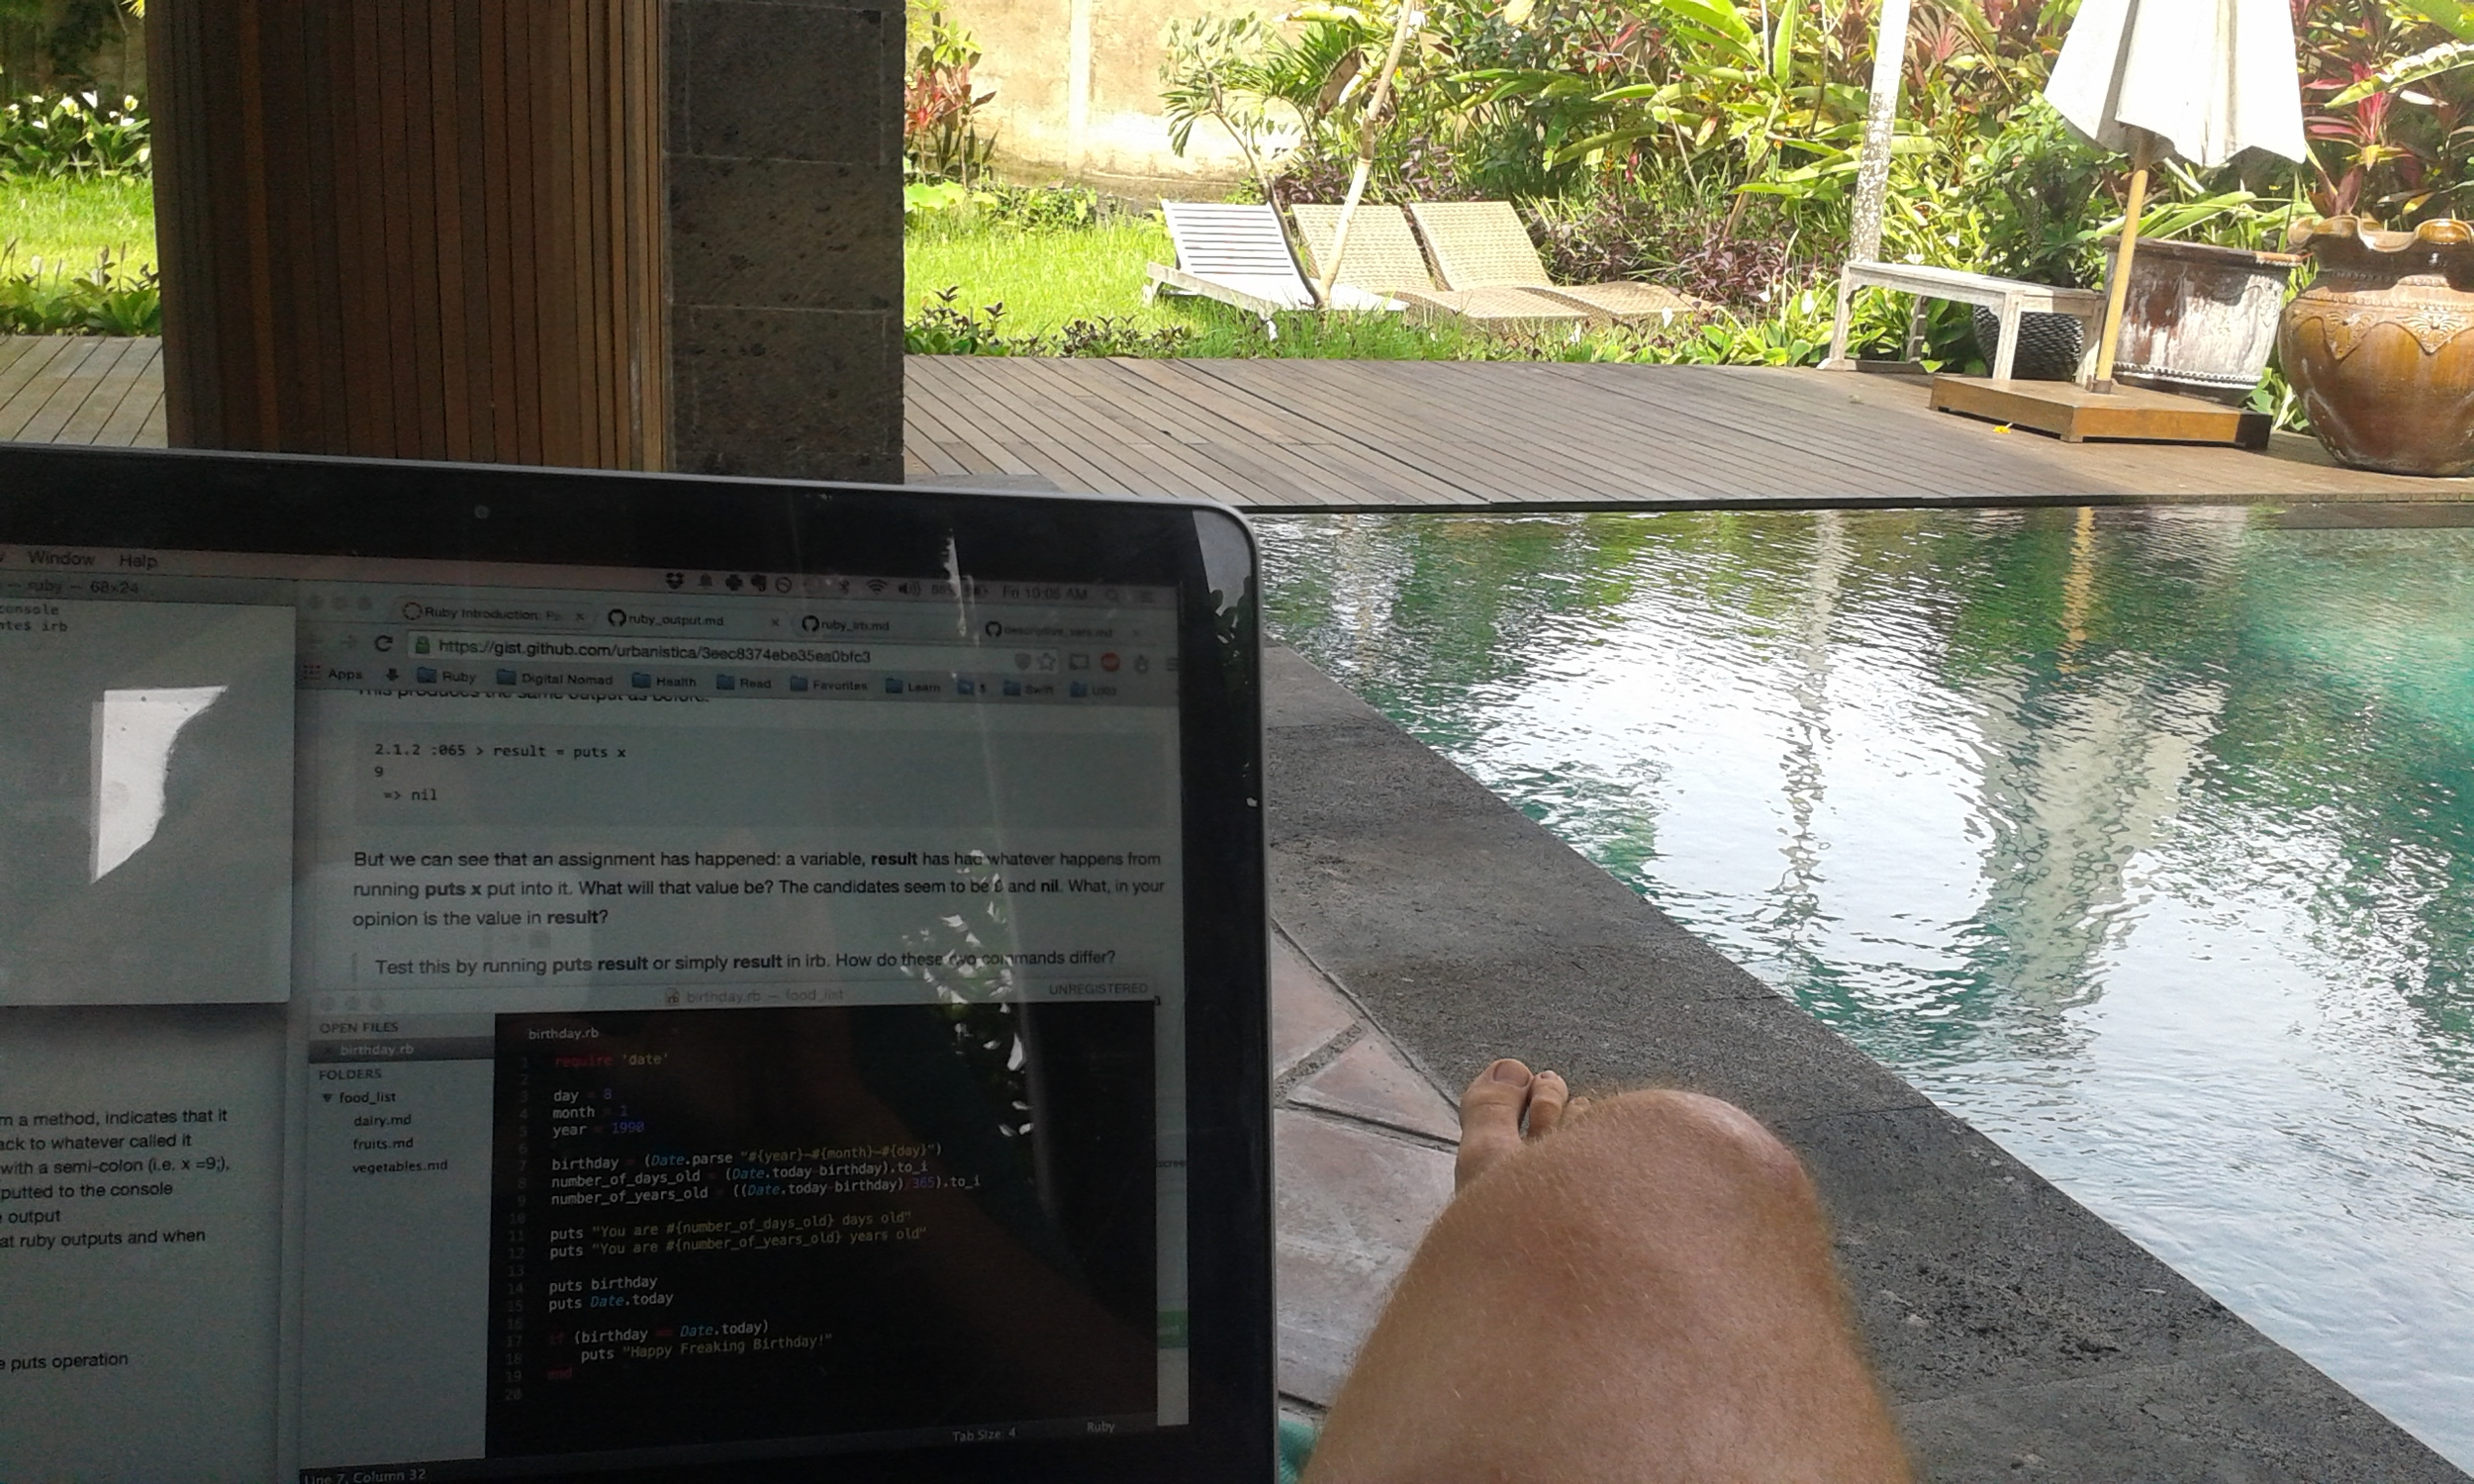 Beanbag Chair + Board Shorts + Pool = The ultimate stress-free coding environment